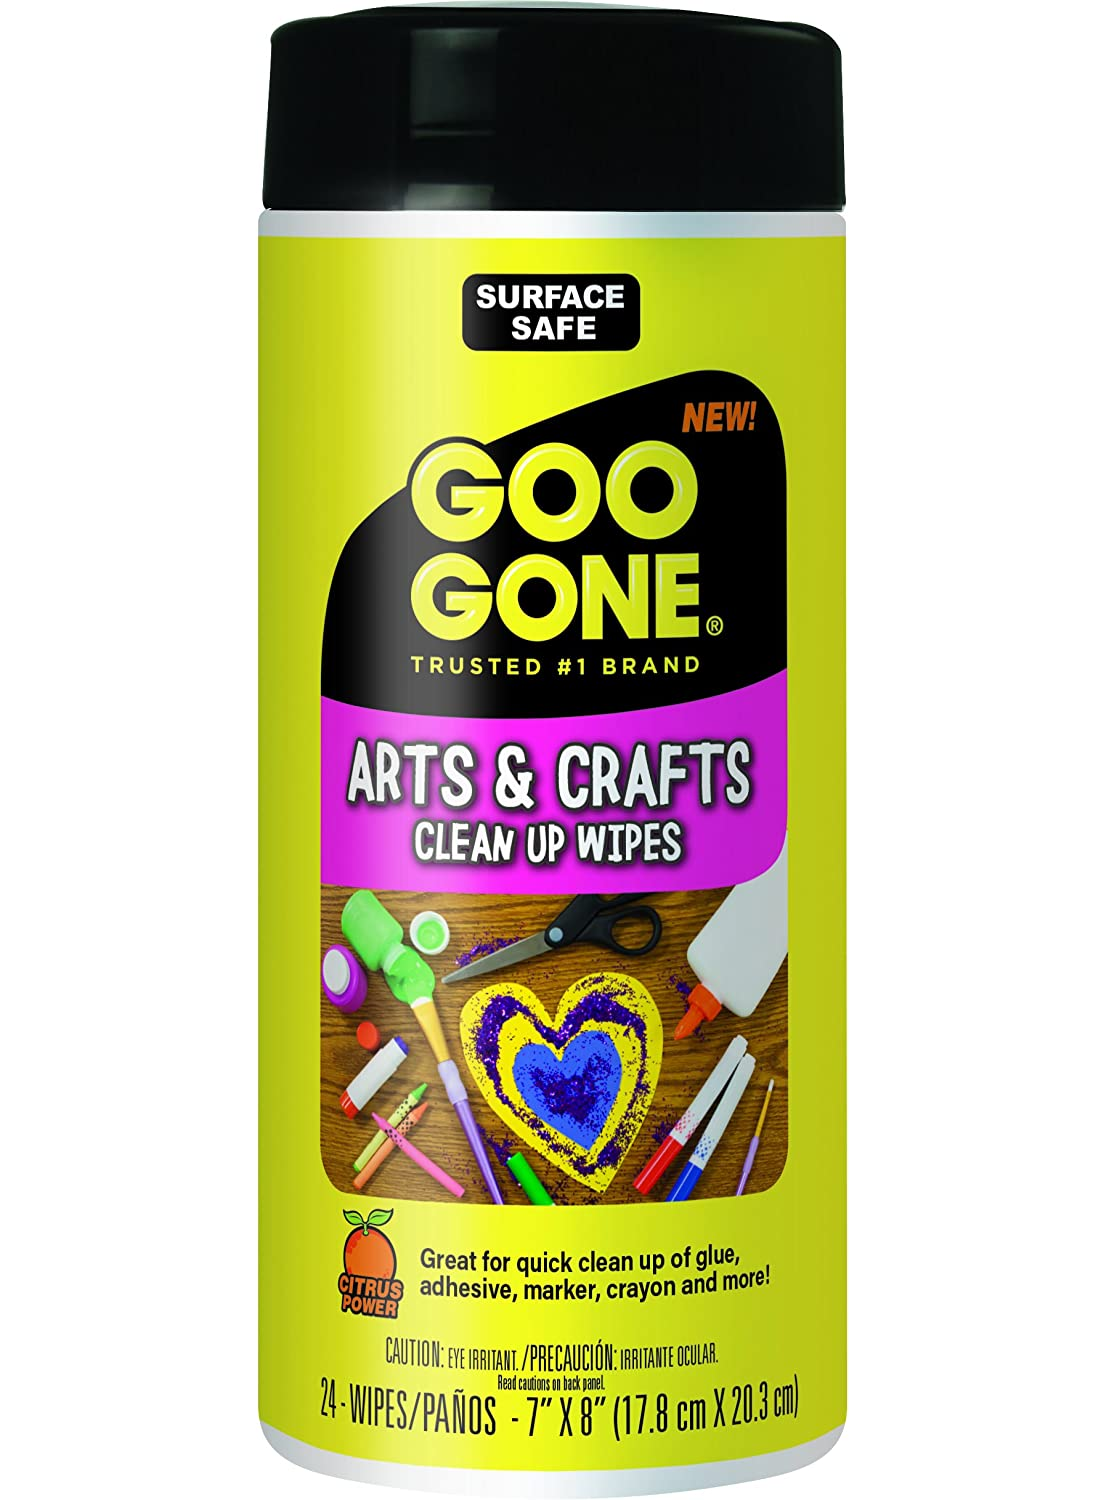 Goo Gone Adhesive Remover Arts and Crafts Clean Up Wipes - 24 Wipes Weiman Products 2208